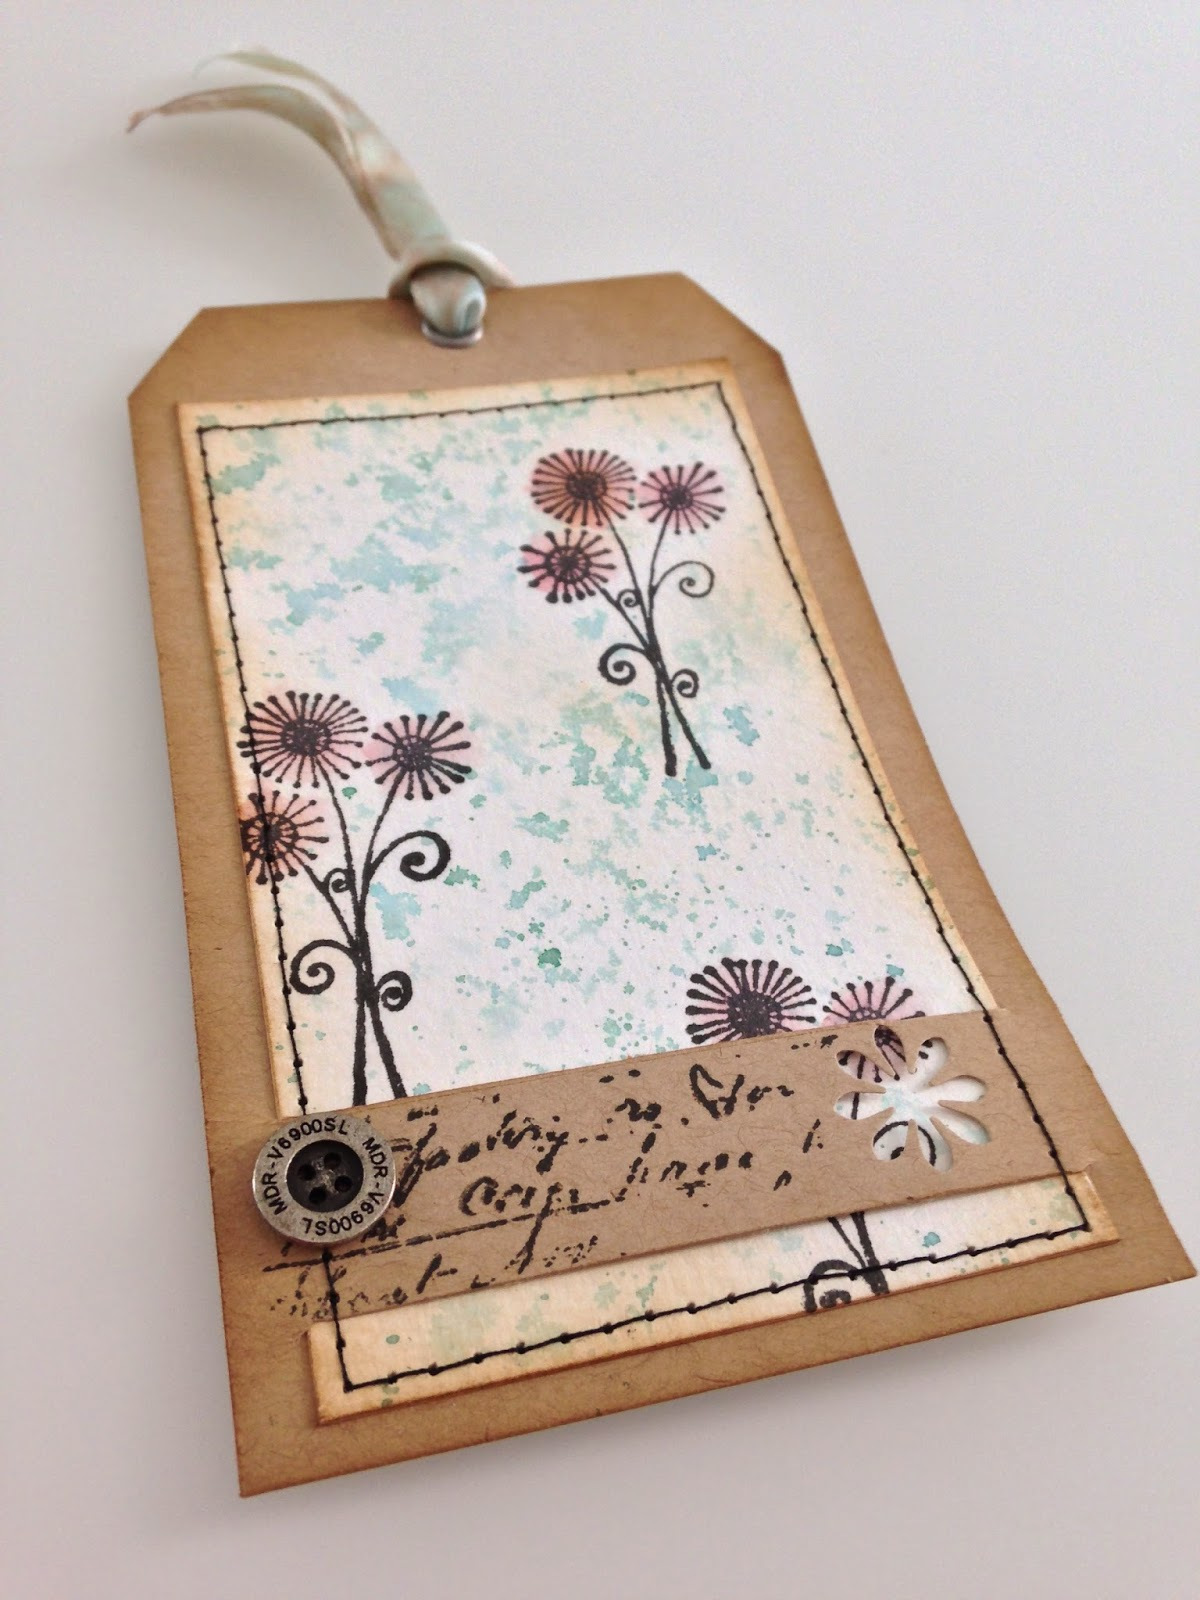 Tim Holtz, Distress Ink, 12 tags of 2015-April